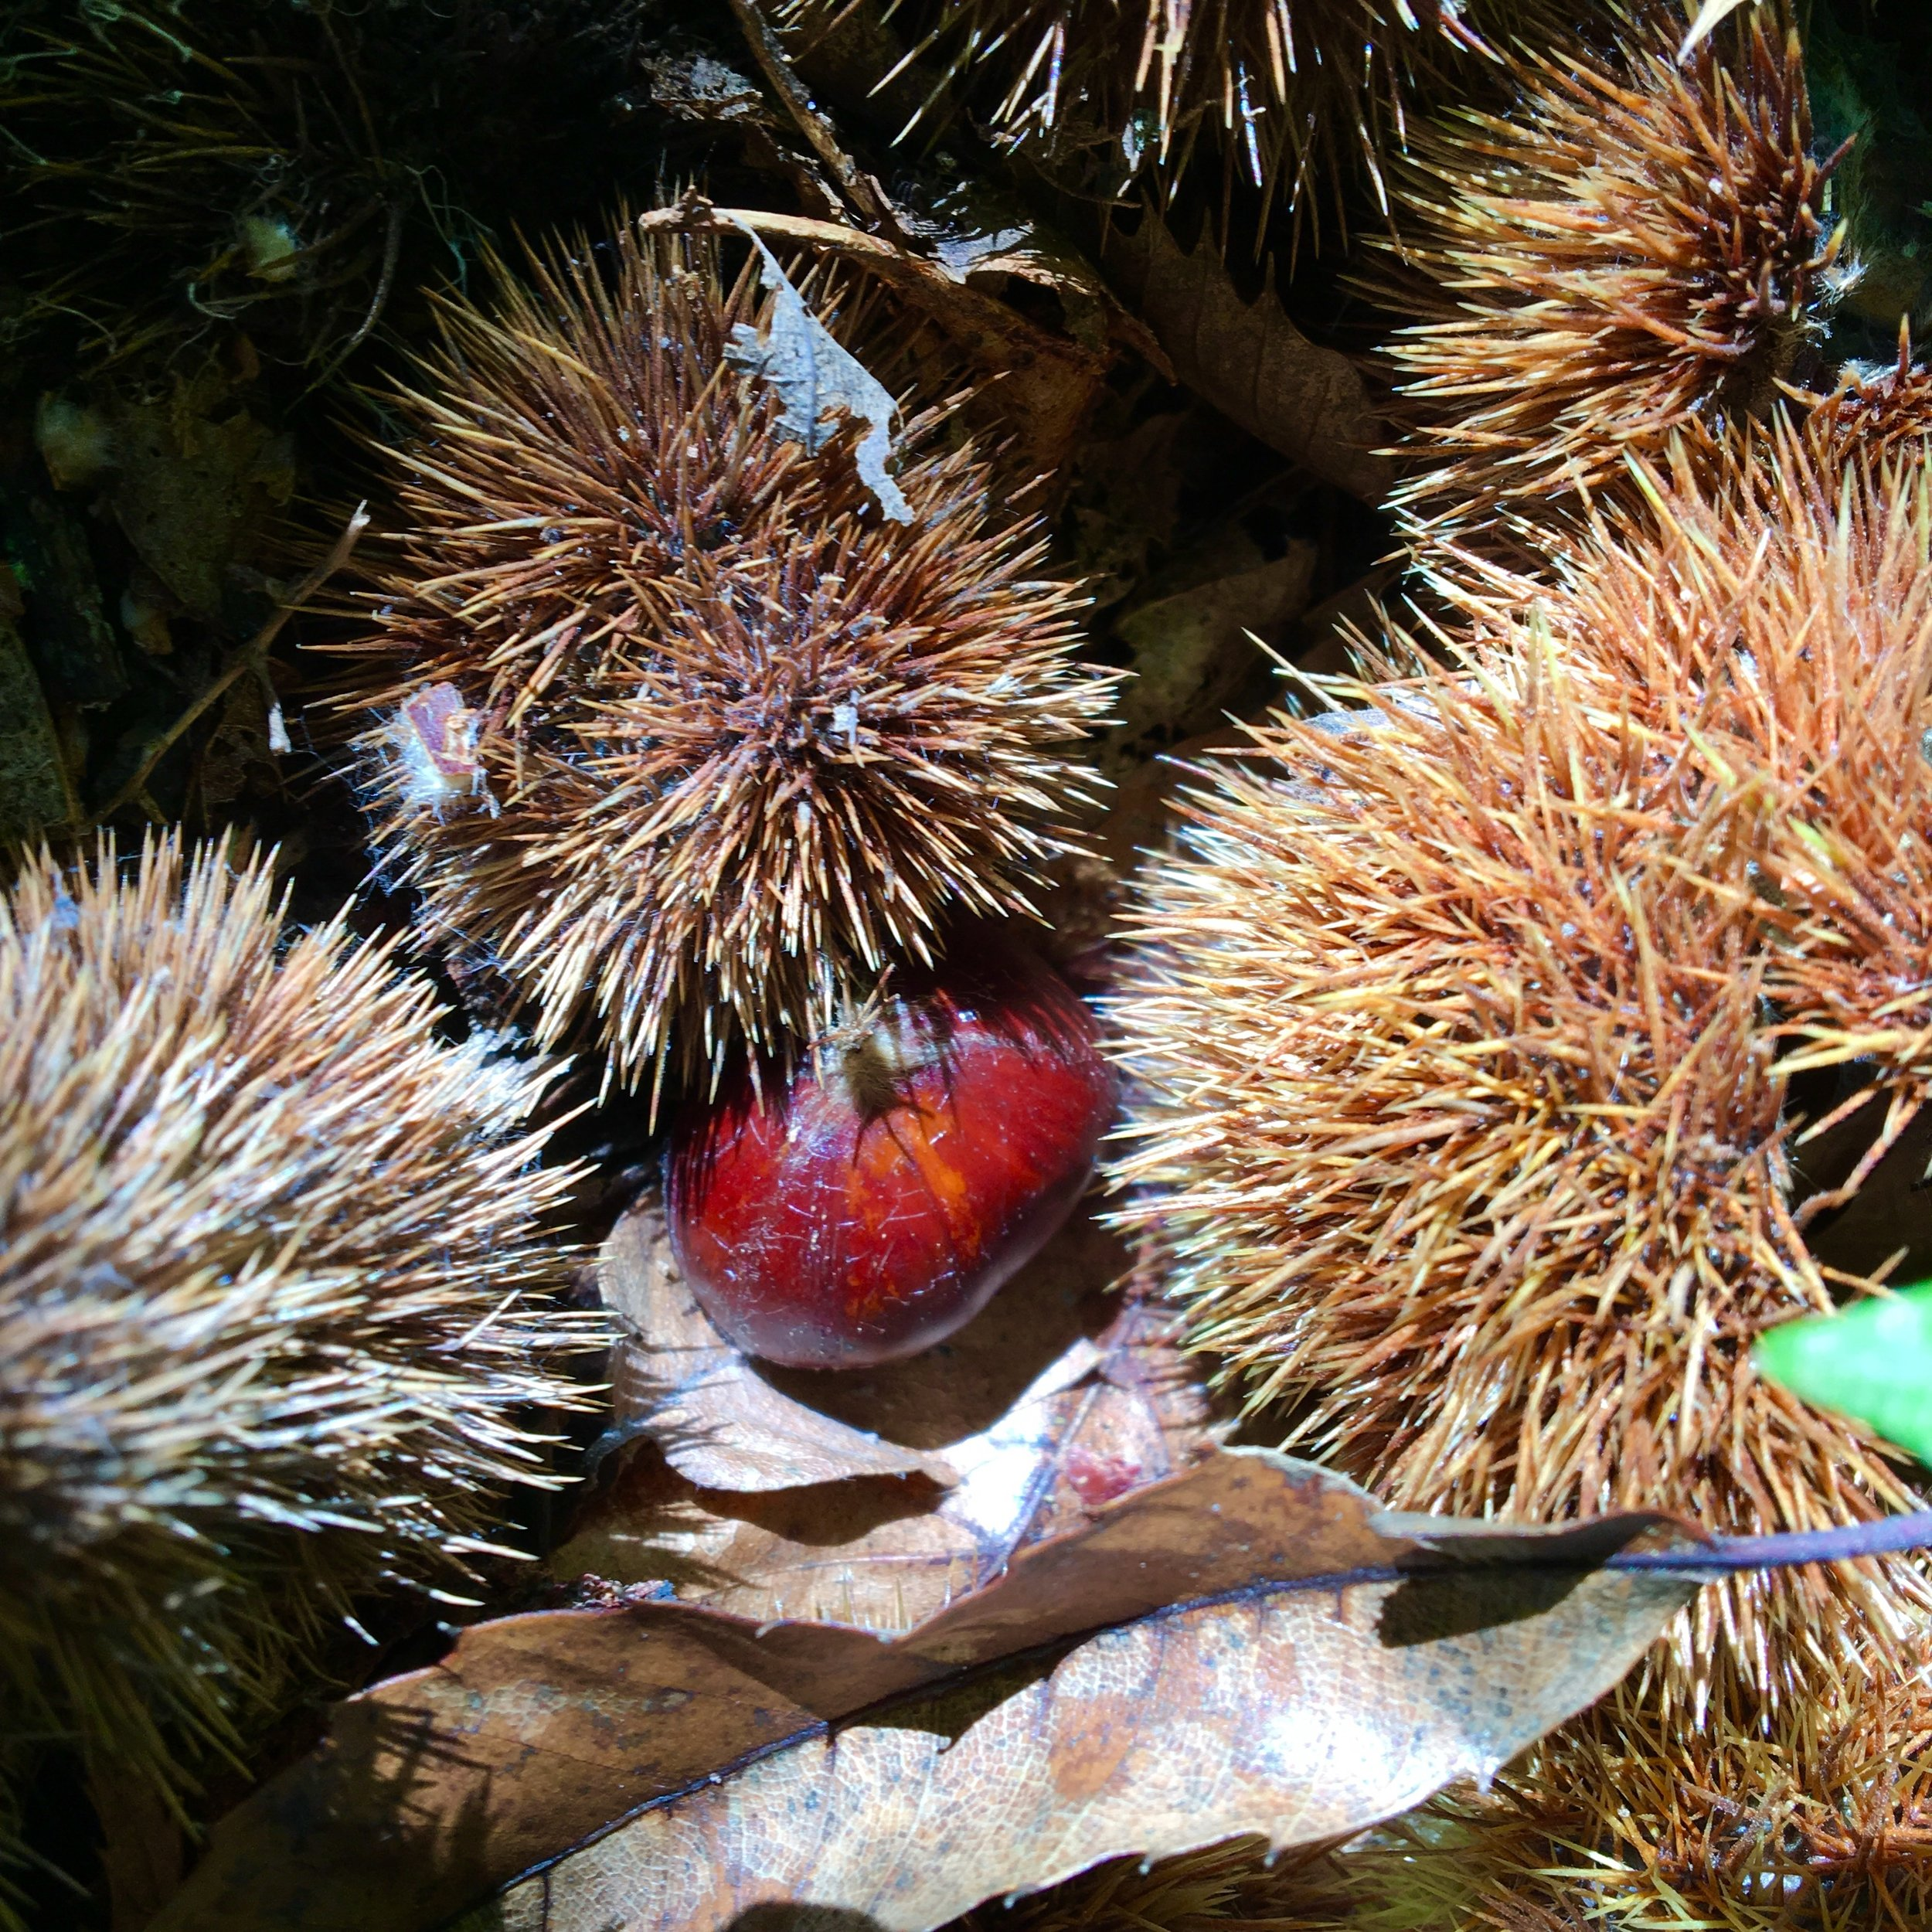 Hunting for chestnuts in Le Taillan-Médoc